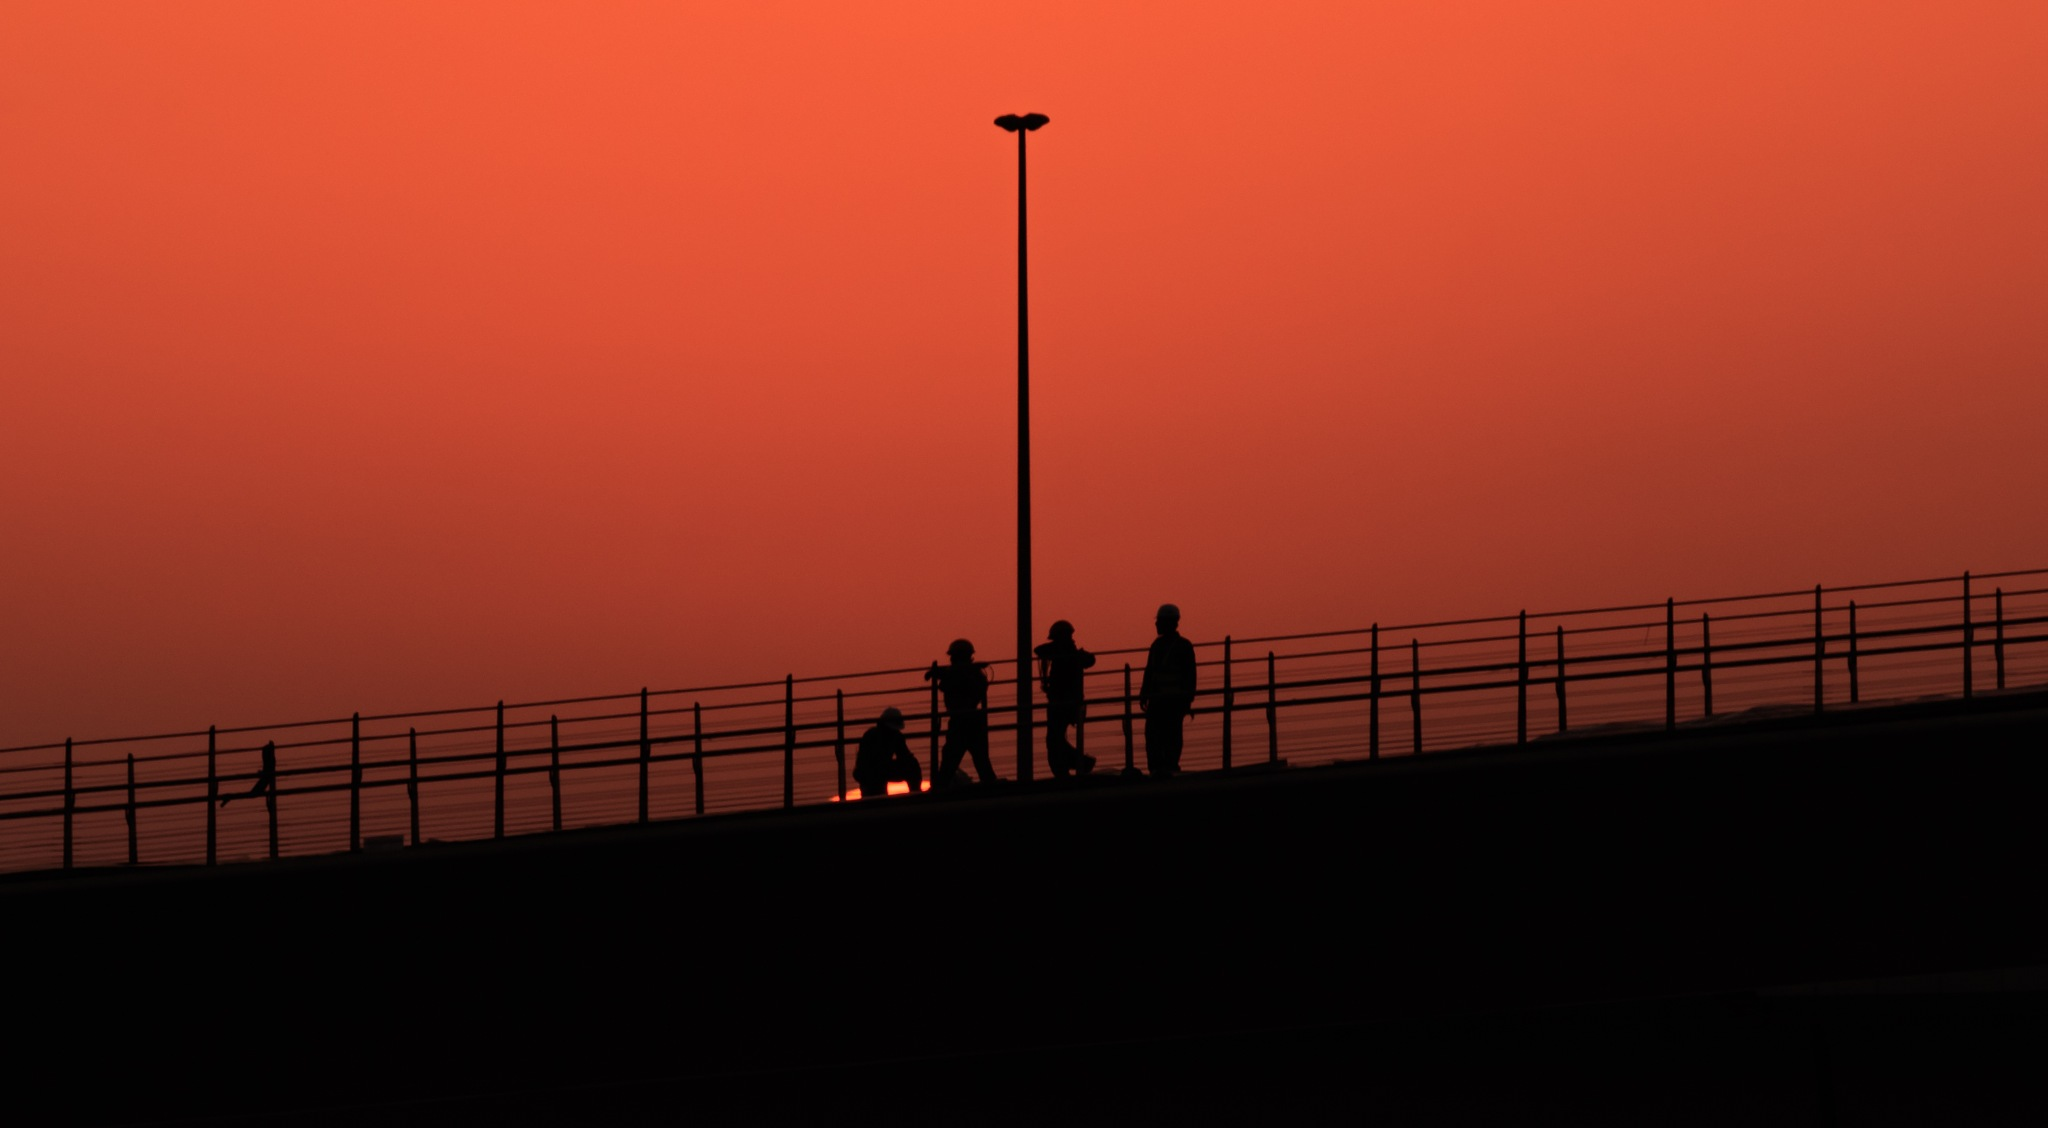 Silhouette! by Mohammed Shamaa